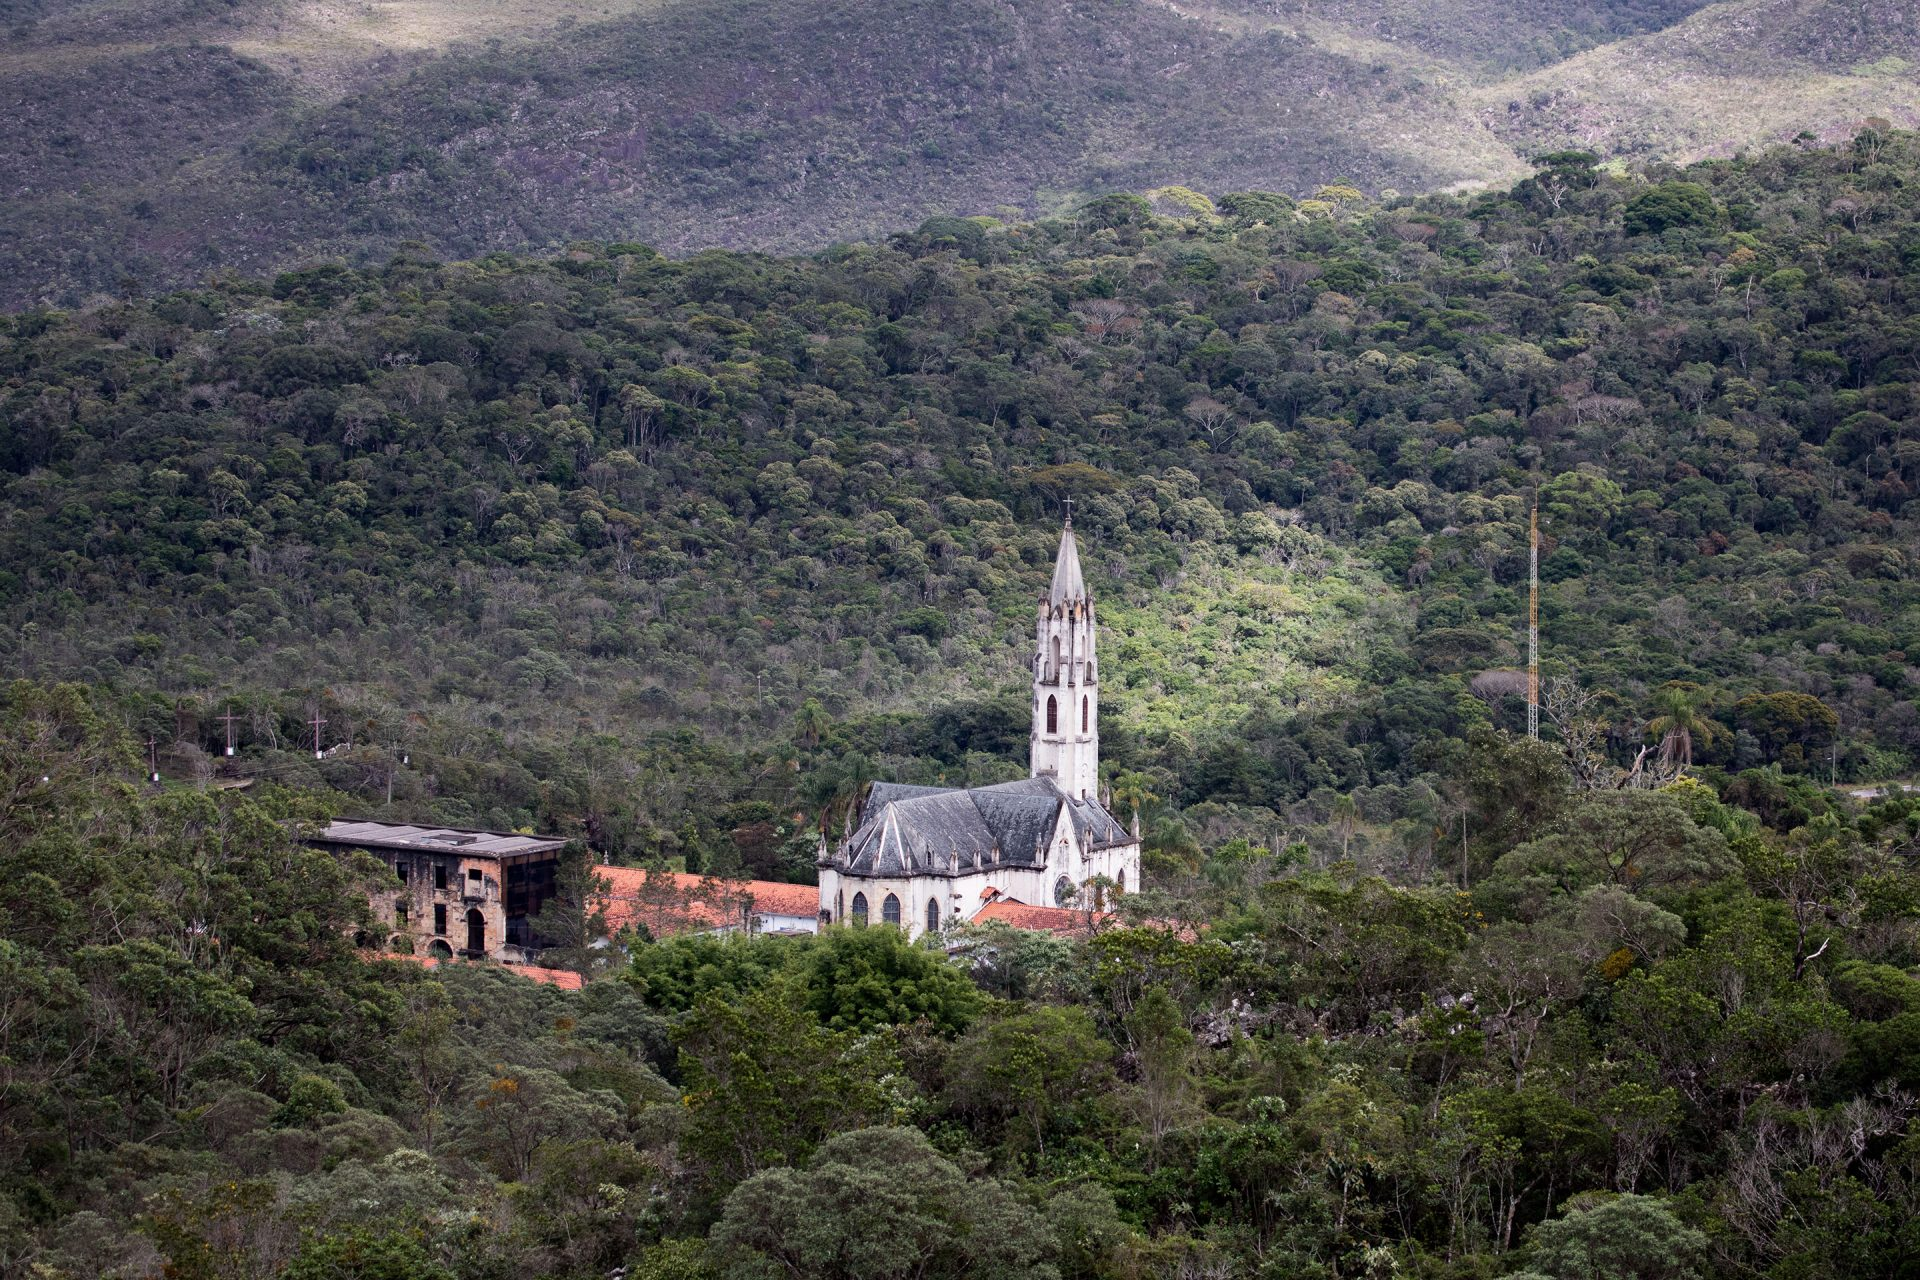 Santuario do Caraca: A relic from the gold rush of the early 1700s, this gem in the middle of montane rainforest is one of the most atmospheric places we have ever visited.